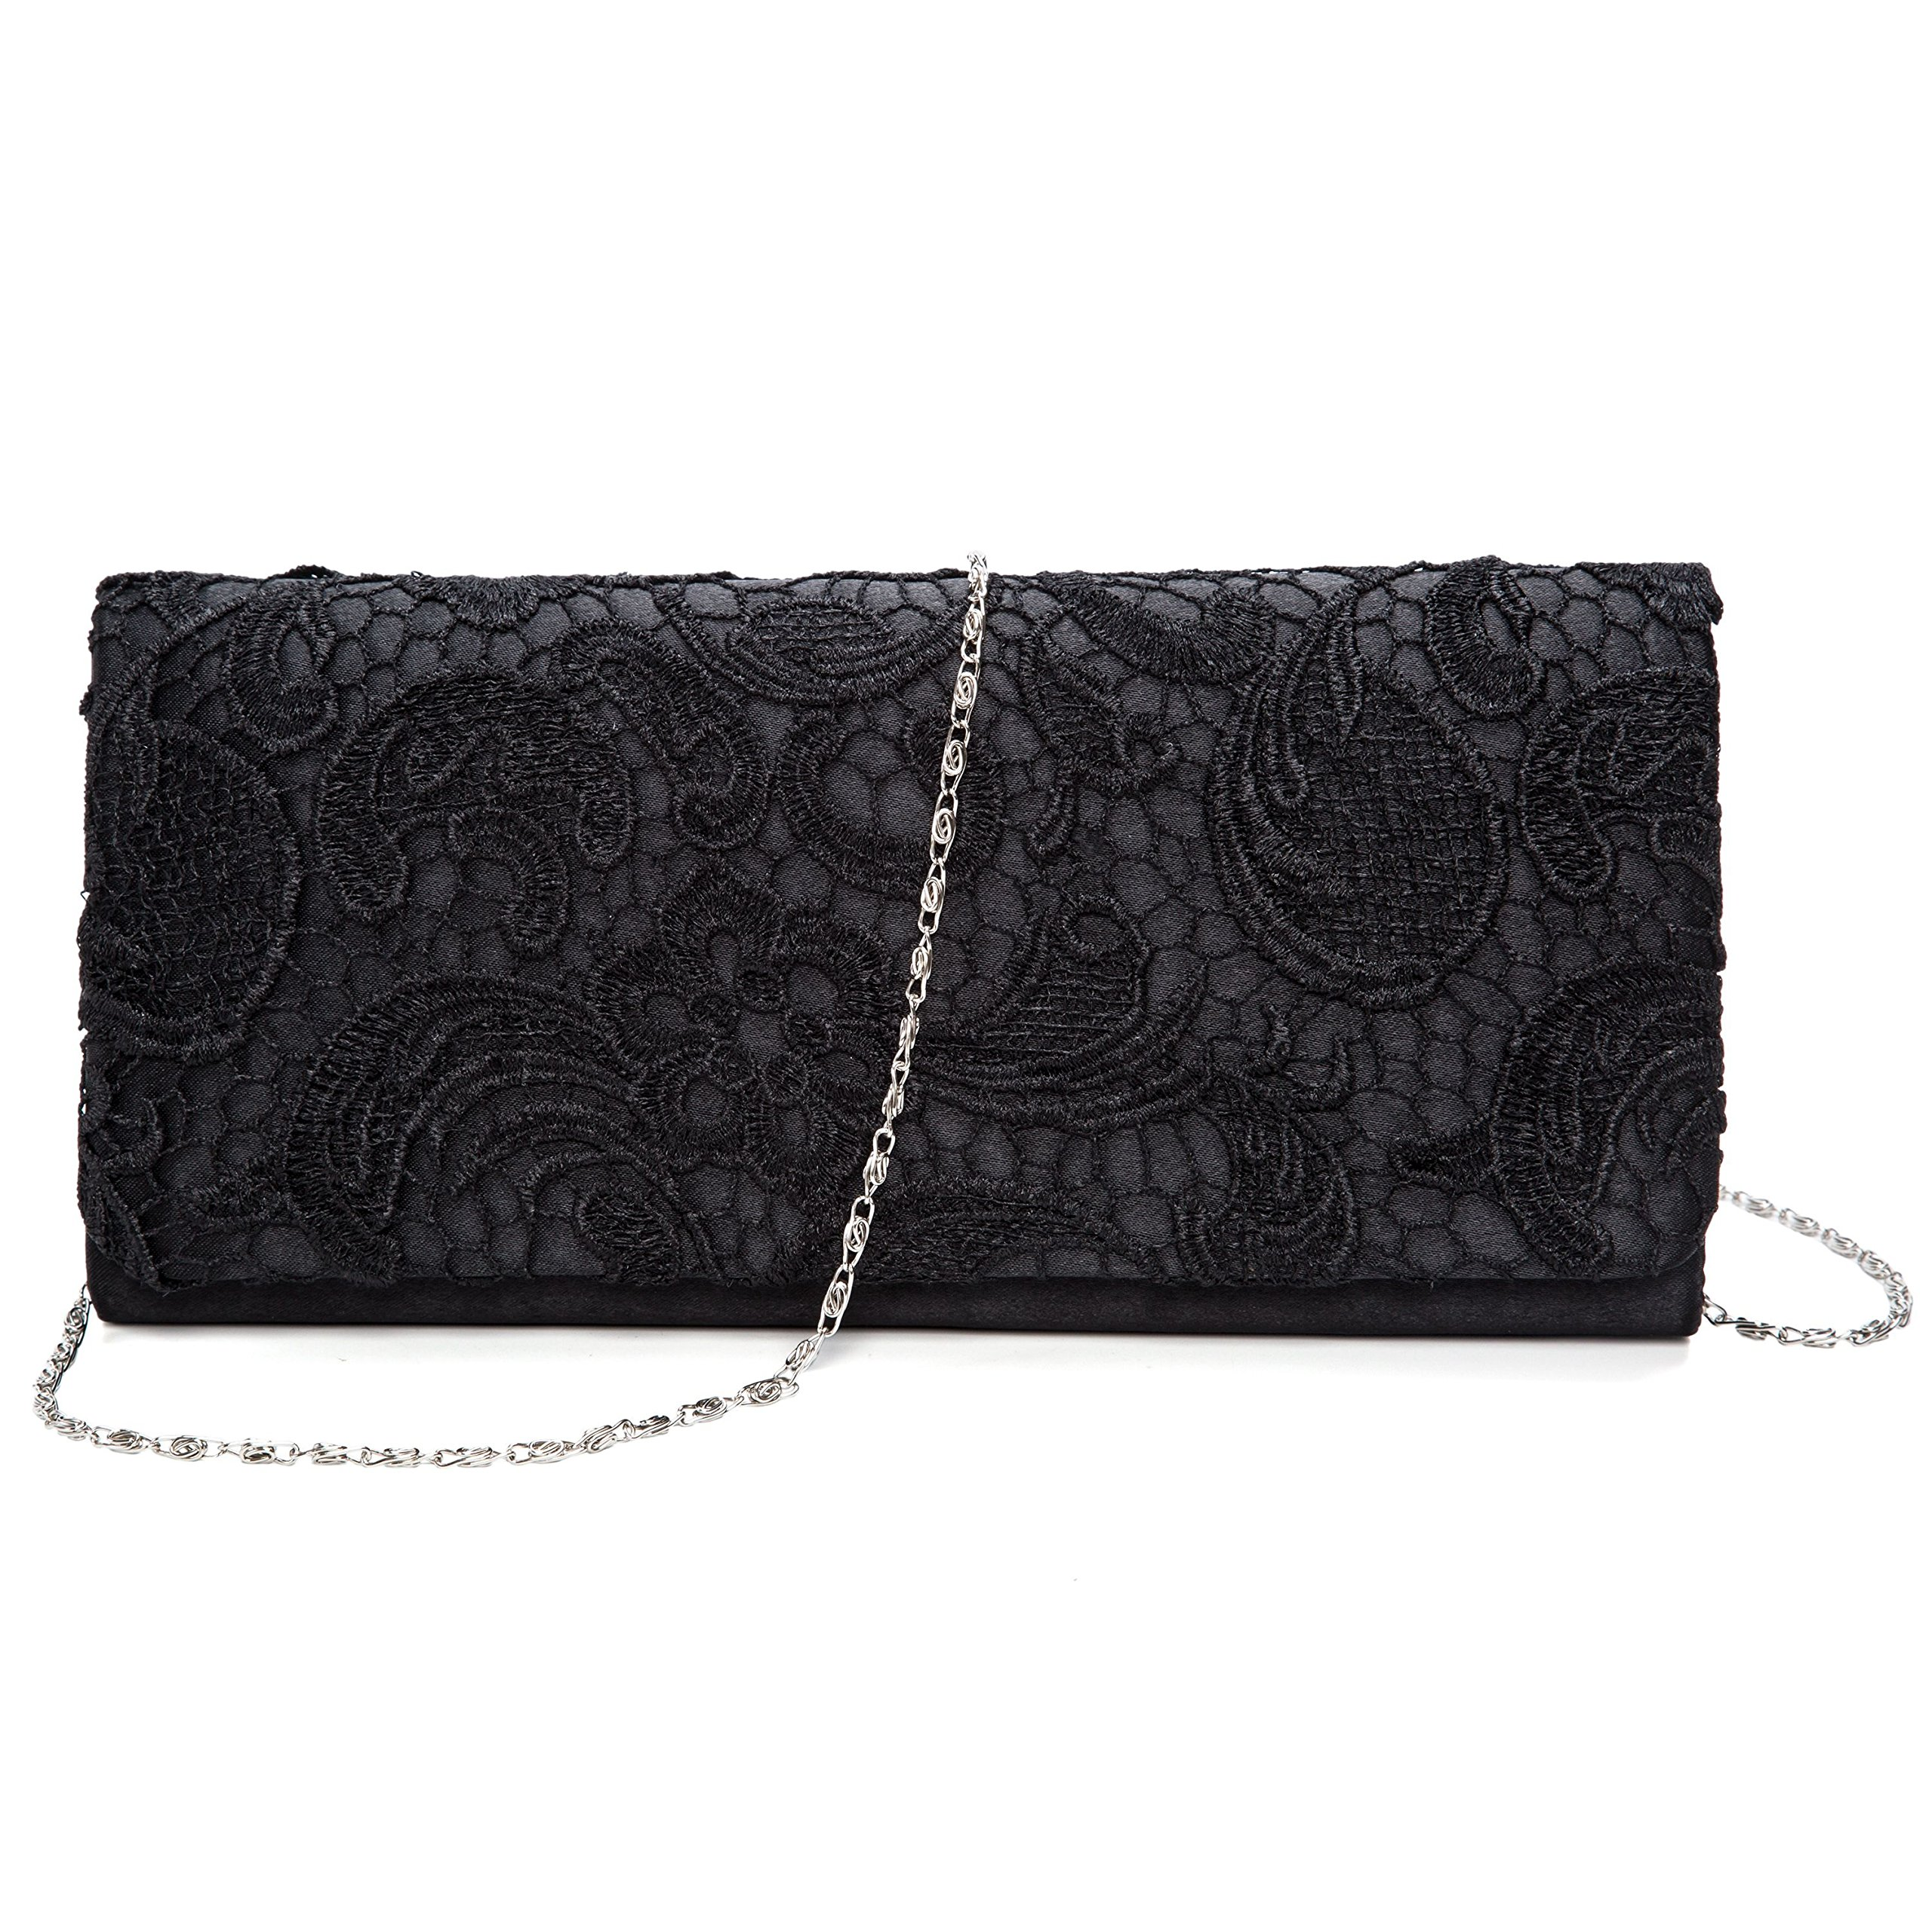 Kaever Women's Lace Floral Clutches Evening Bags Purse for Wedding Party Handbags (Black) by Kaever